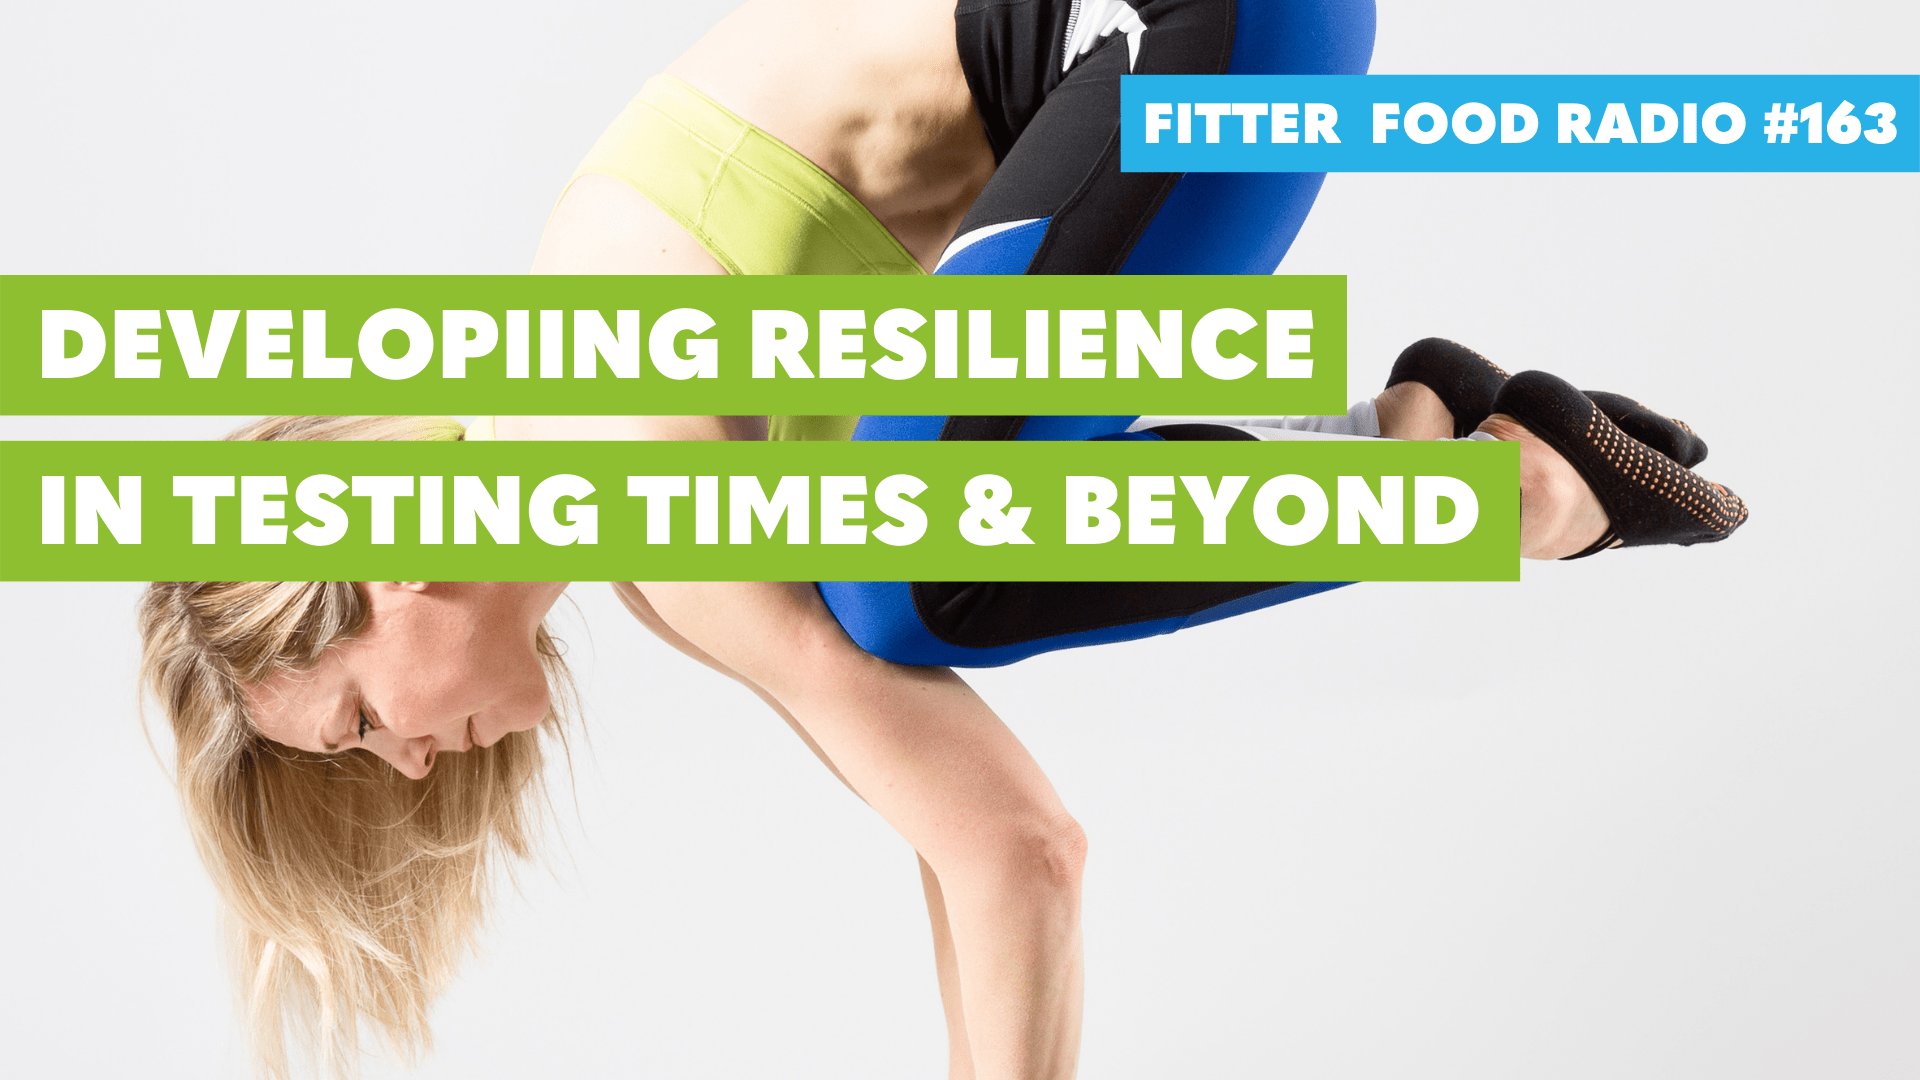 Fitter Food Radio 163 - Developing Resilience